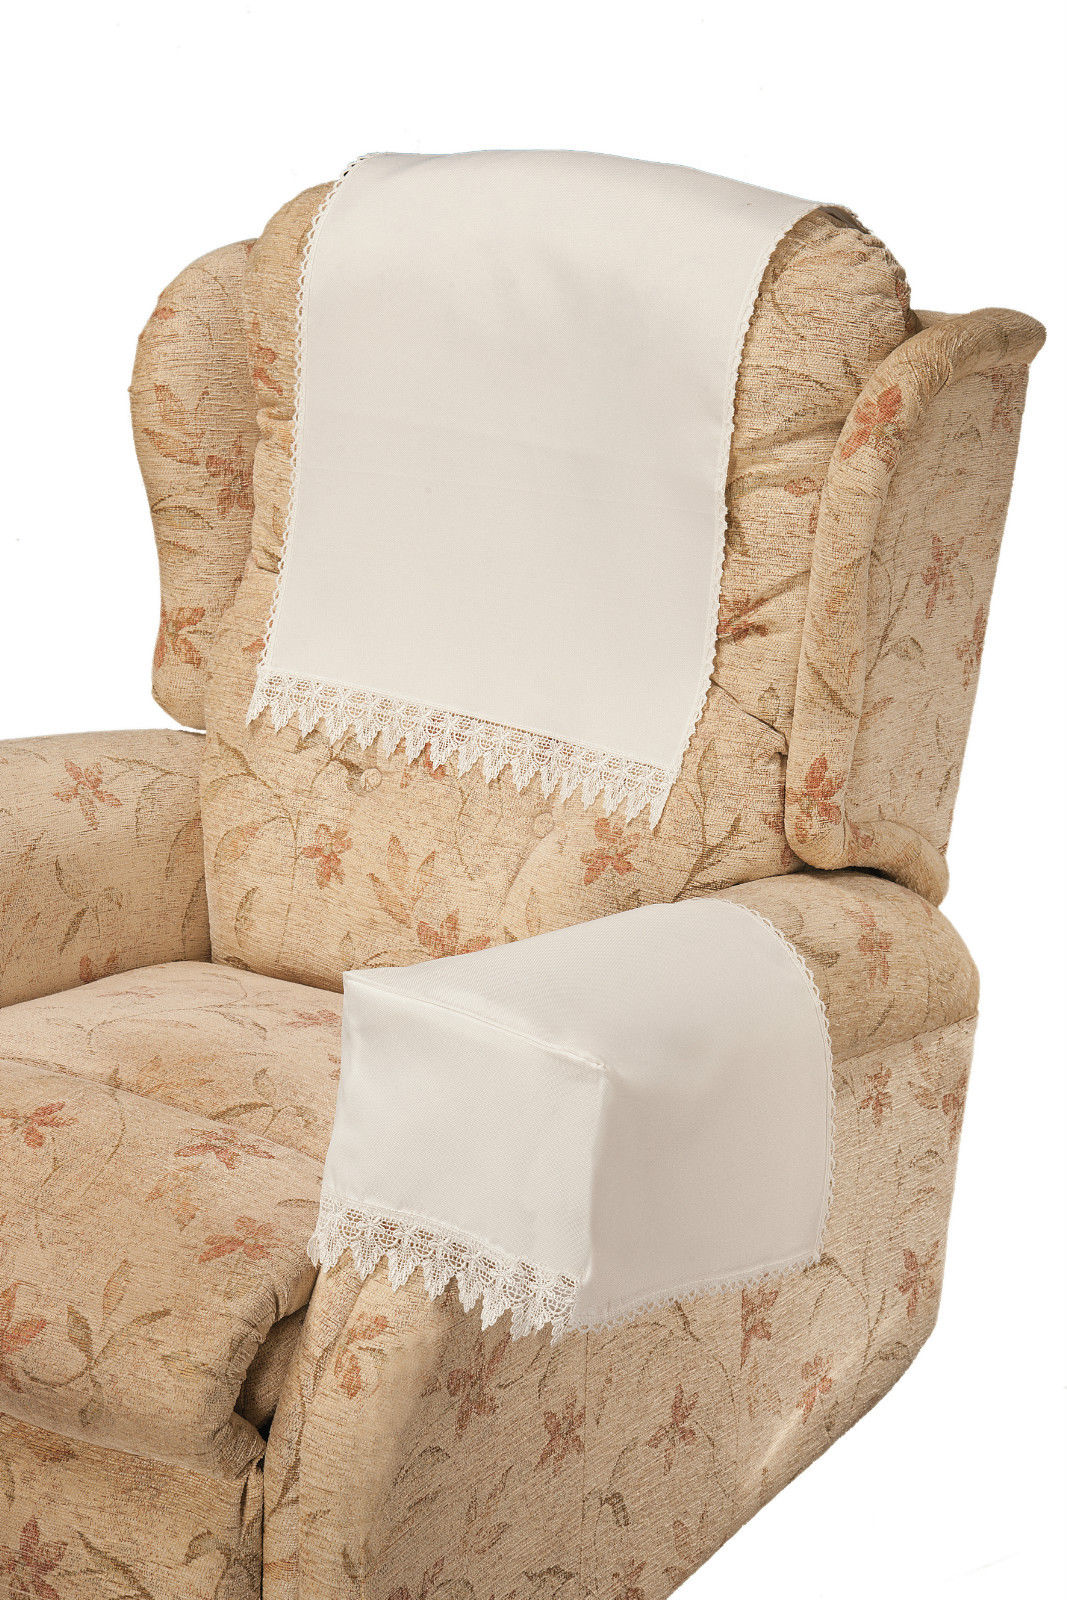 COMET White 6 Chair Arm Covers And 5 Chair Backs With